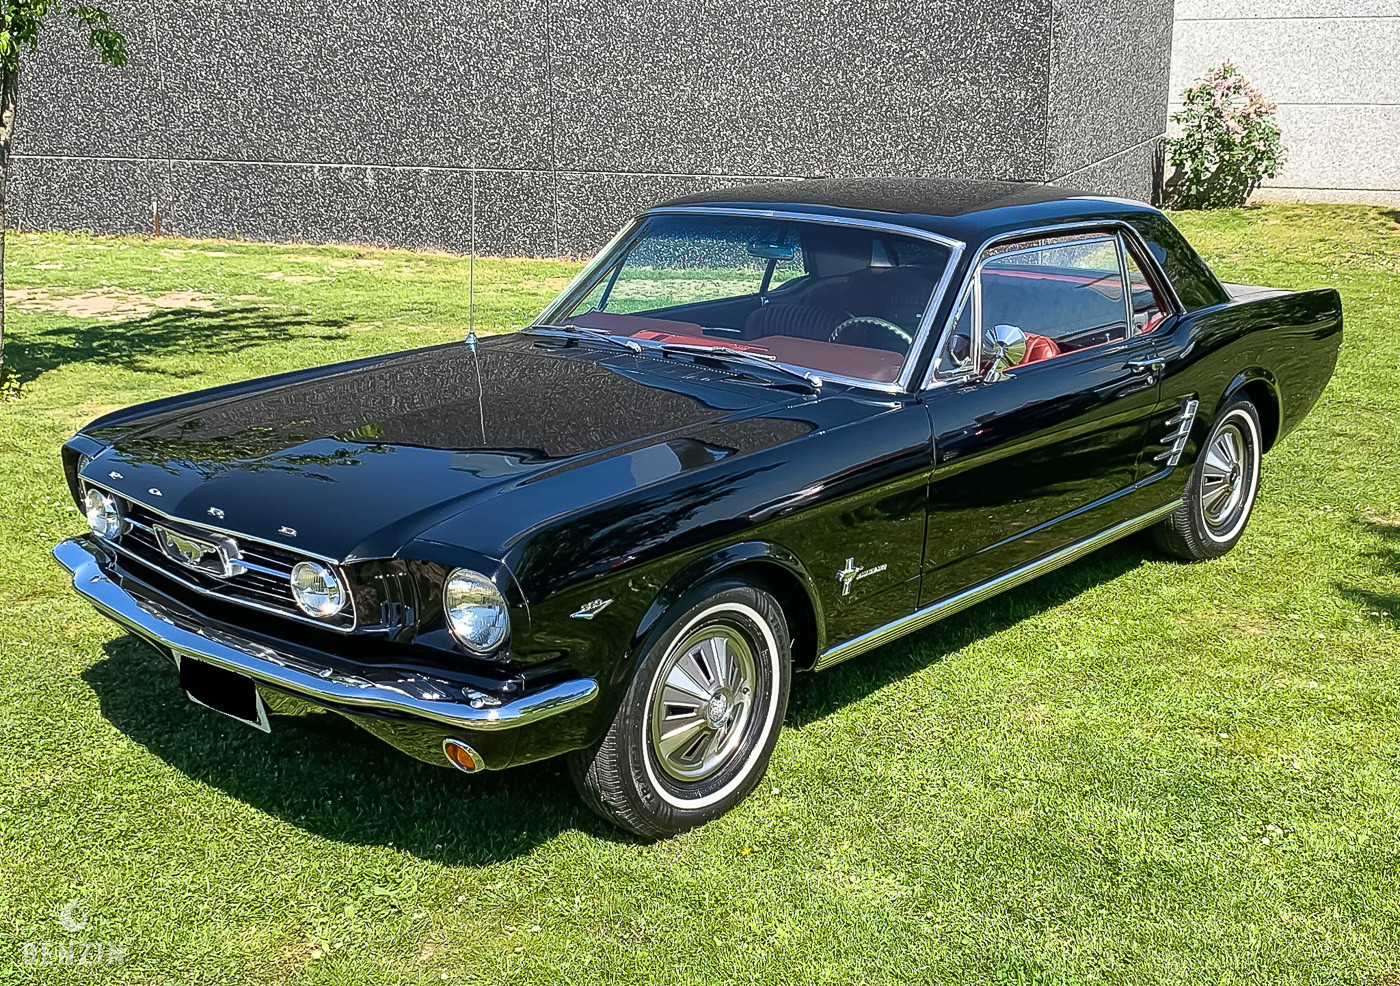 Ford Mustang 289ci type C